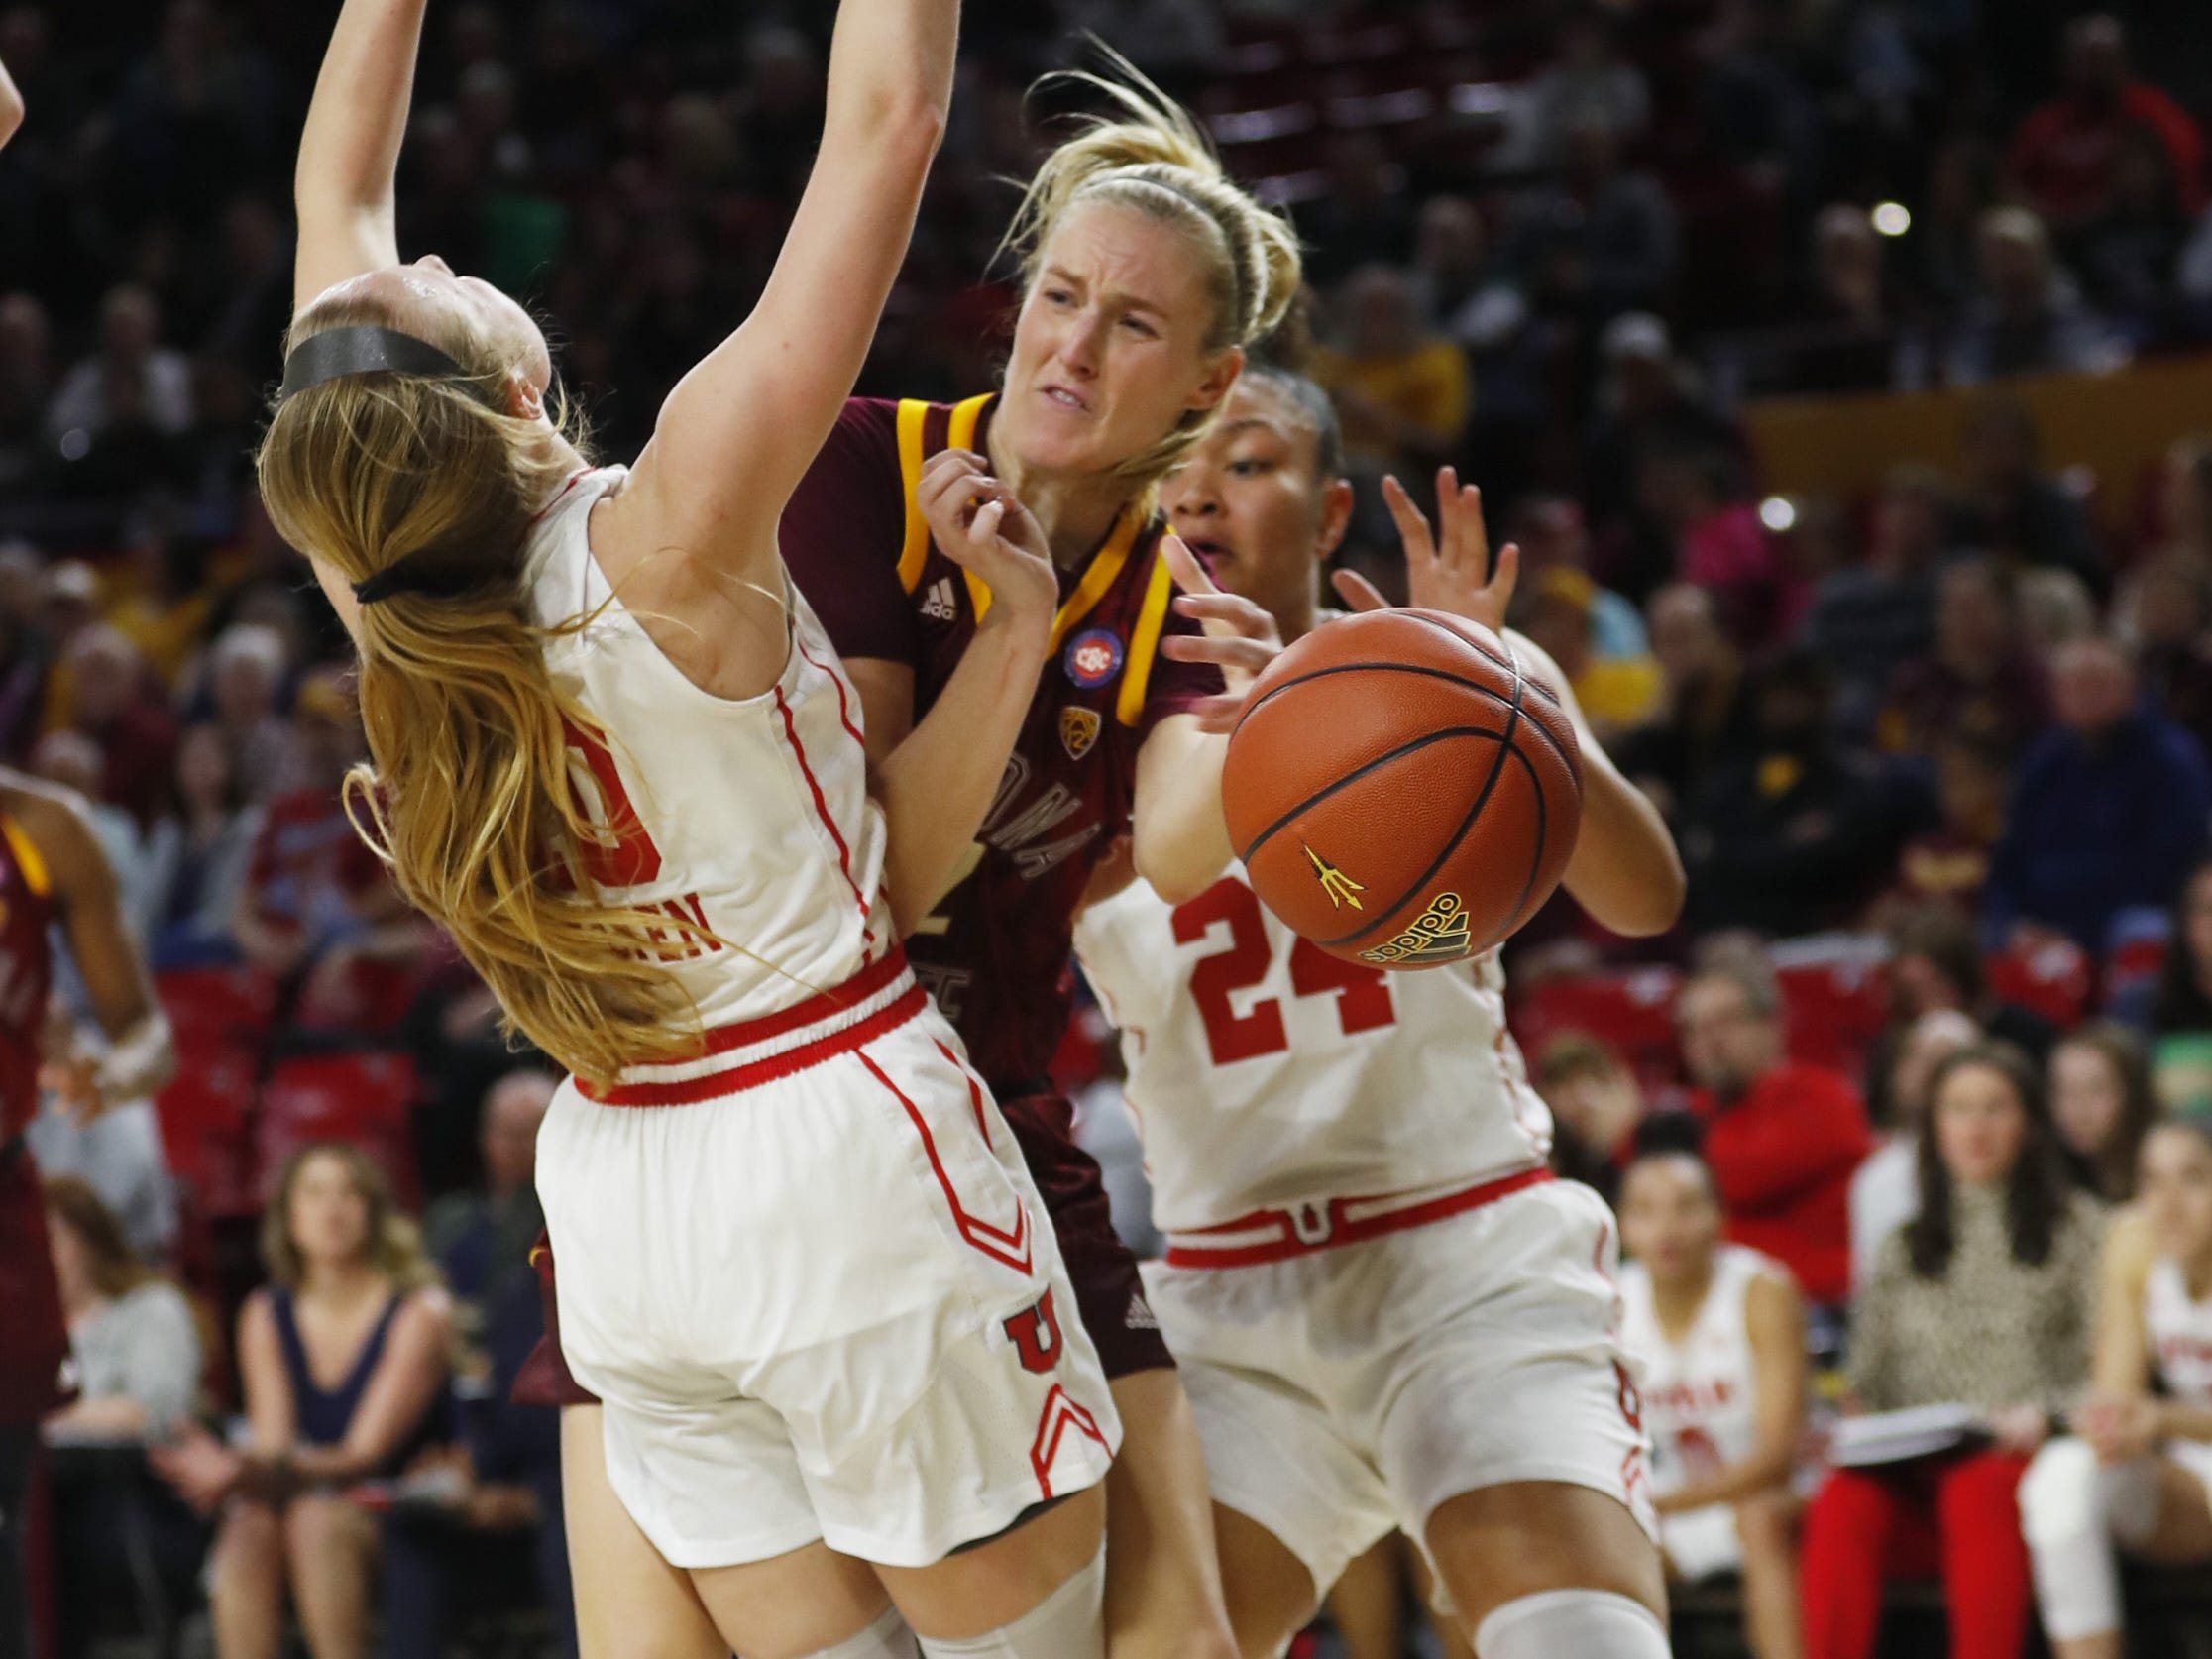 ASU's Courtney Ekmark (22) draws a blocking foul on Utah's Dru Gylten (10) during the first half at Wells Fargo Arena in Tempe, Ariz. on February 17, 2019.